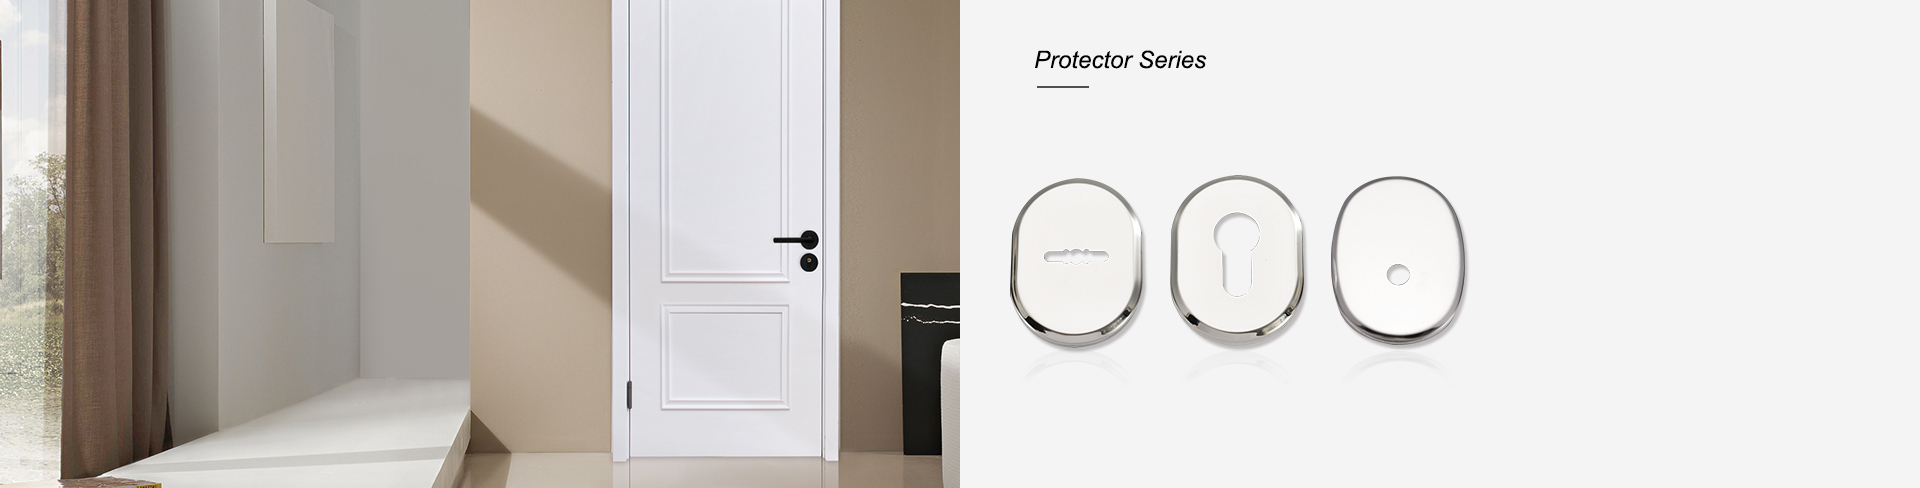 Protector Series